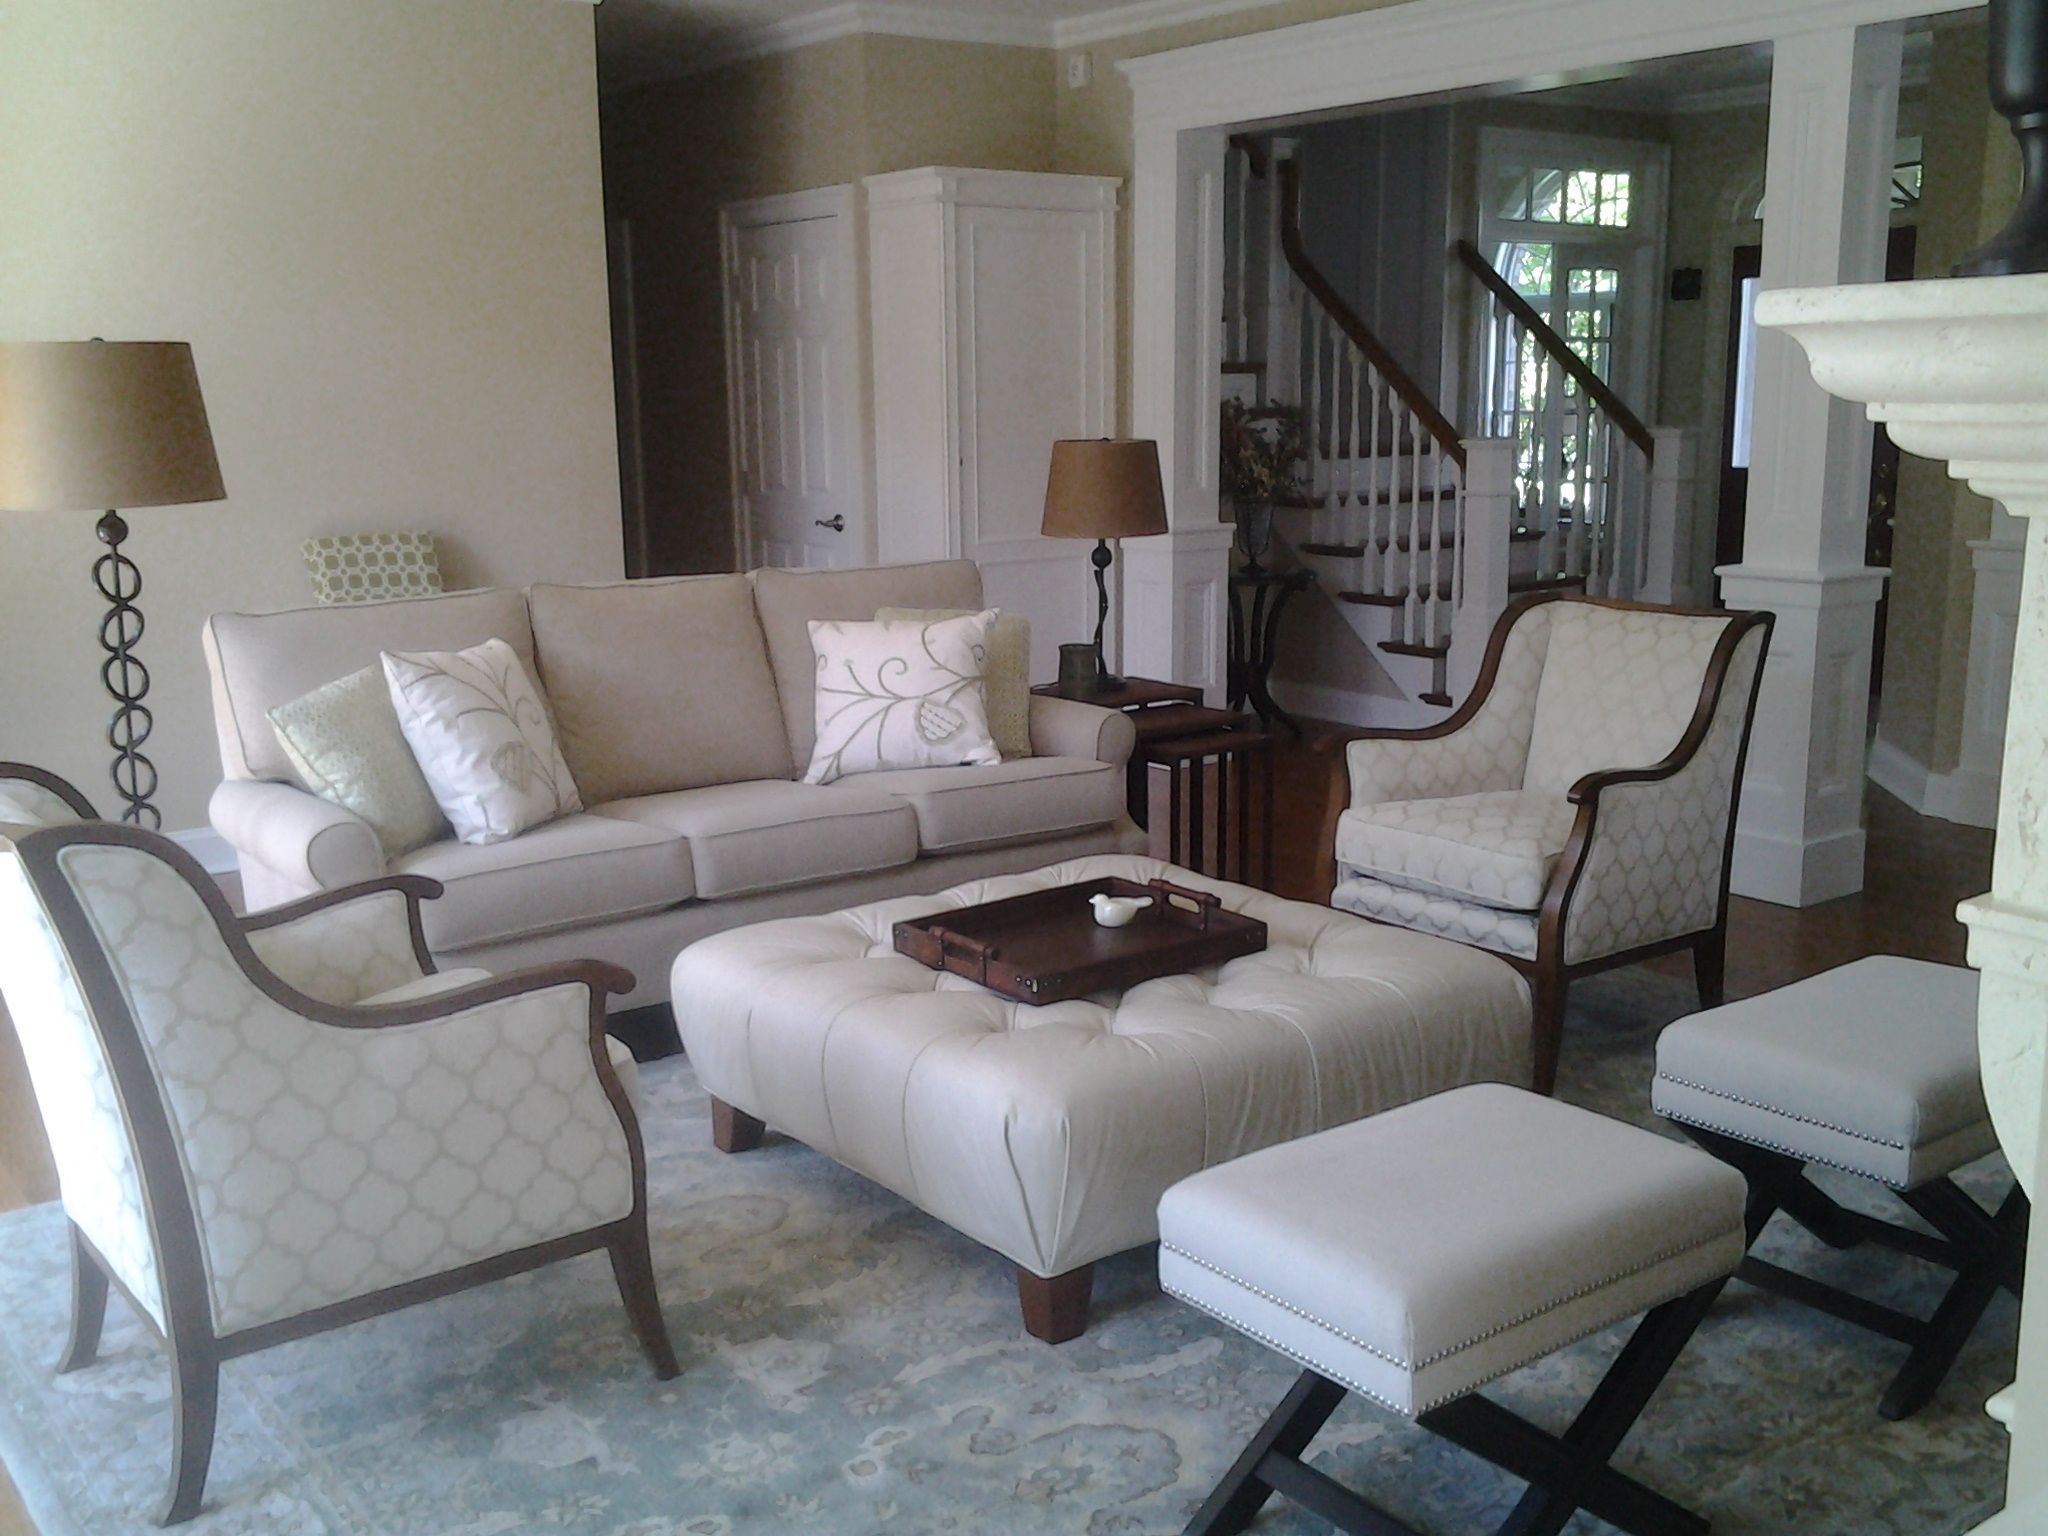 A view from a Classic Furniture customer's home. How can our designers improve your home?